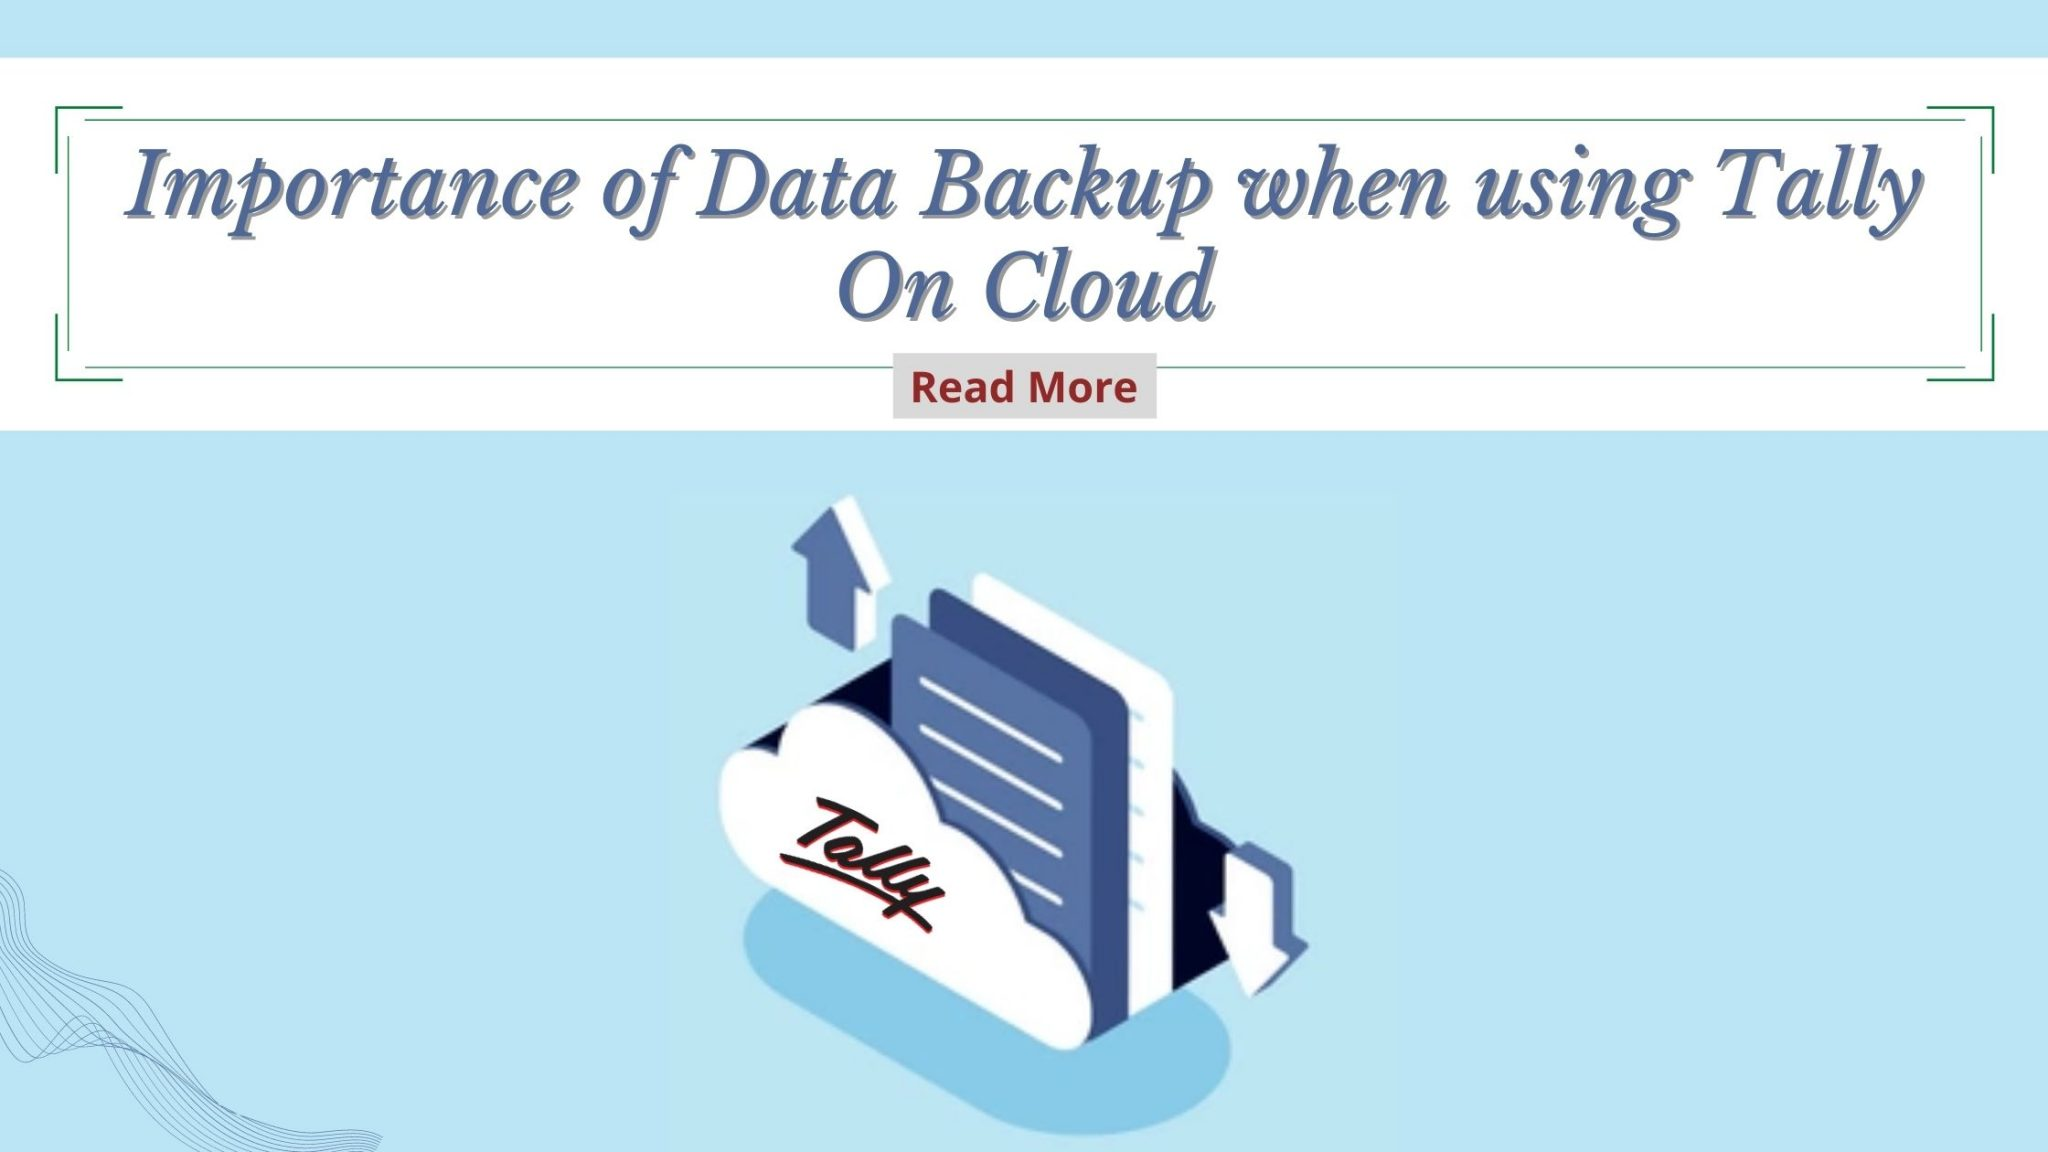 Importance of Data Backup when using Tally On Cloud